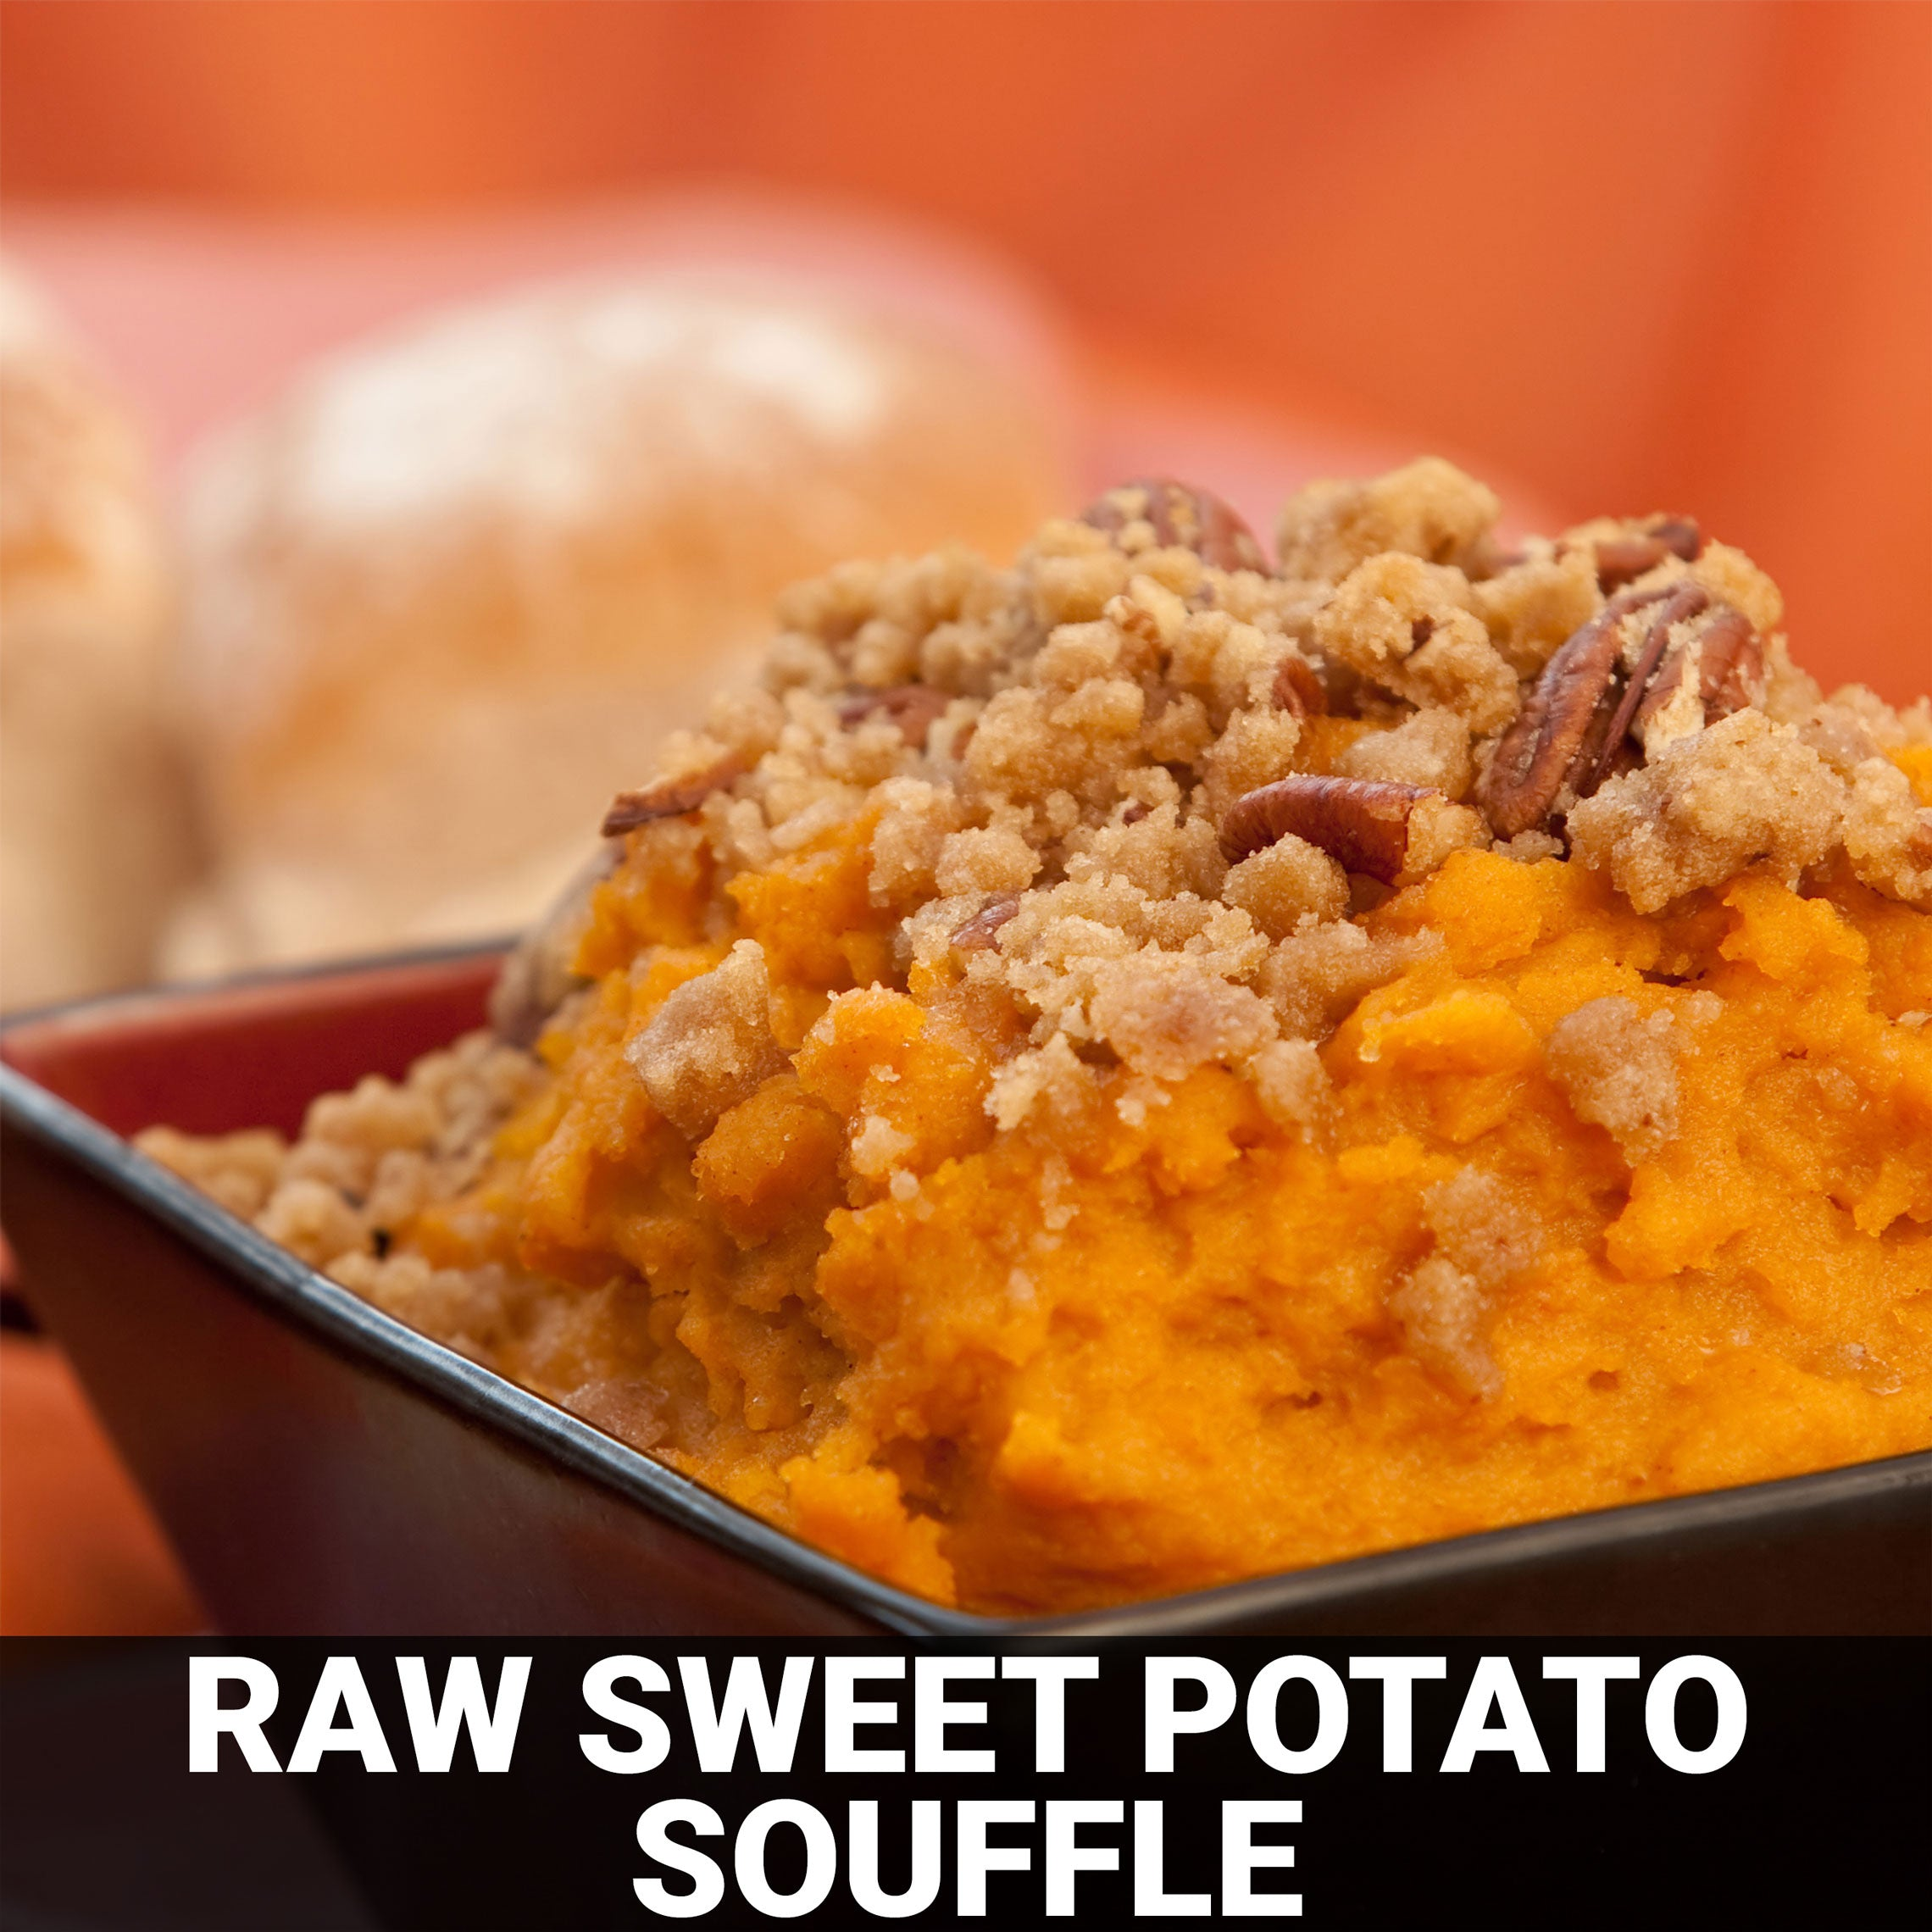 Raw Sweet Potato Souffle Recipe - Foods Alive